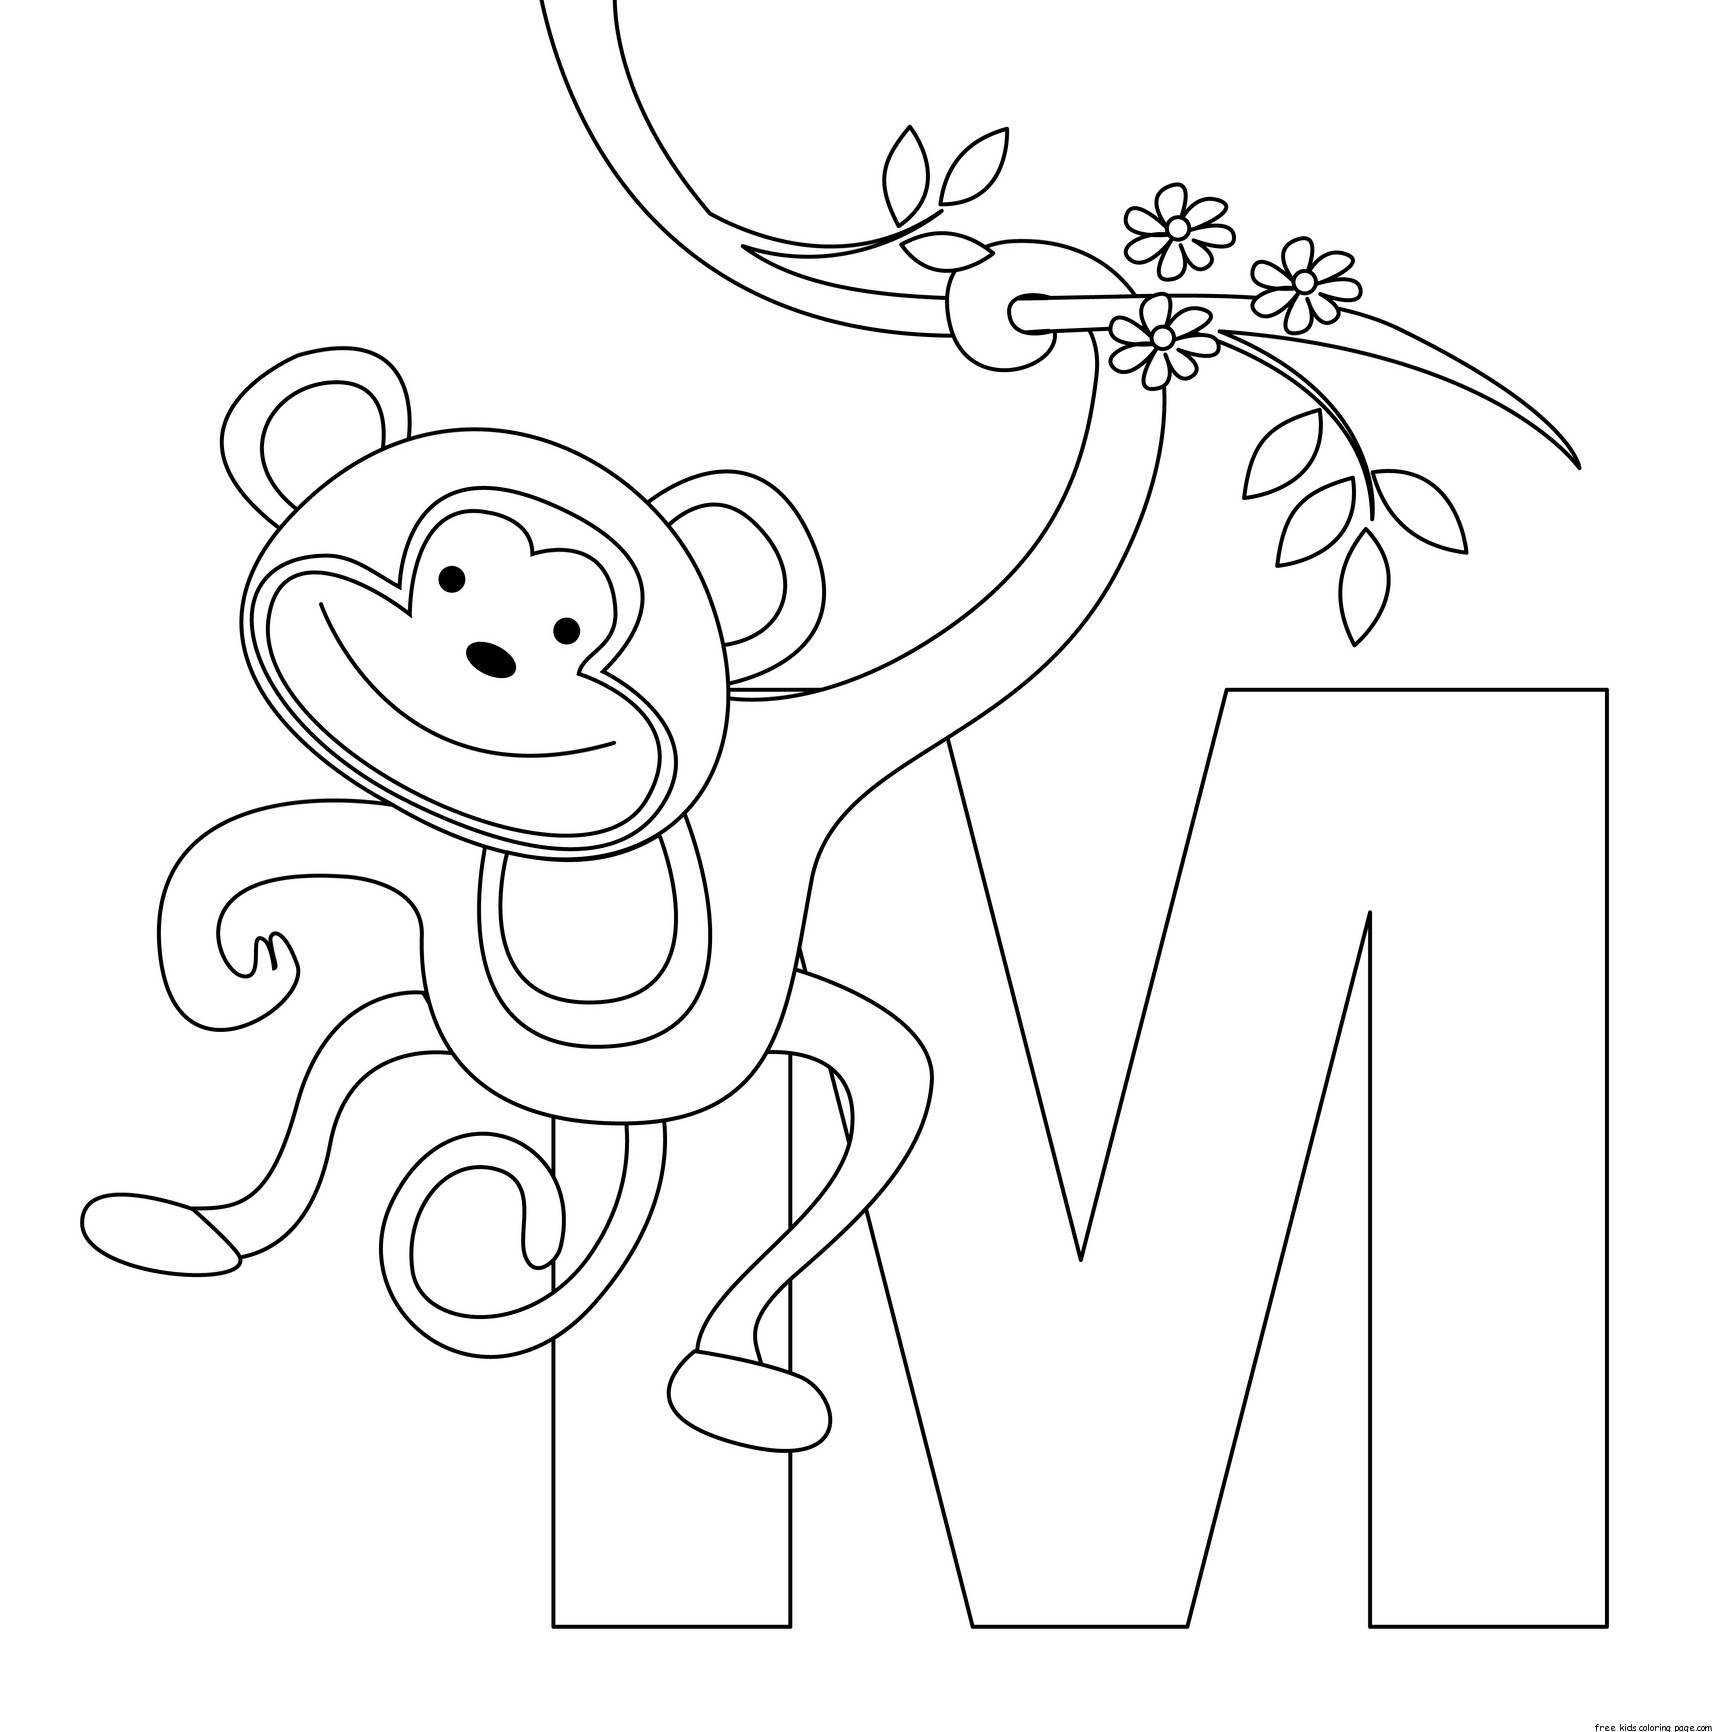 printable animal alphabet letters m coloring pagesfree printable coloring pages for kids. Black Bedroom Furniture Sets. Home Design Ideas